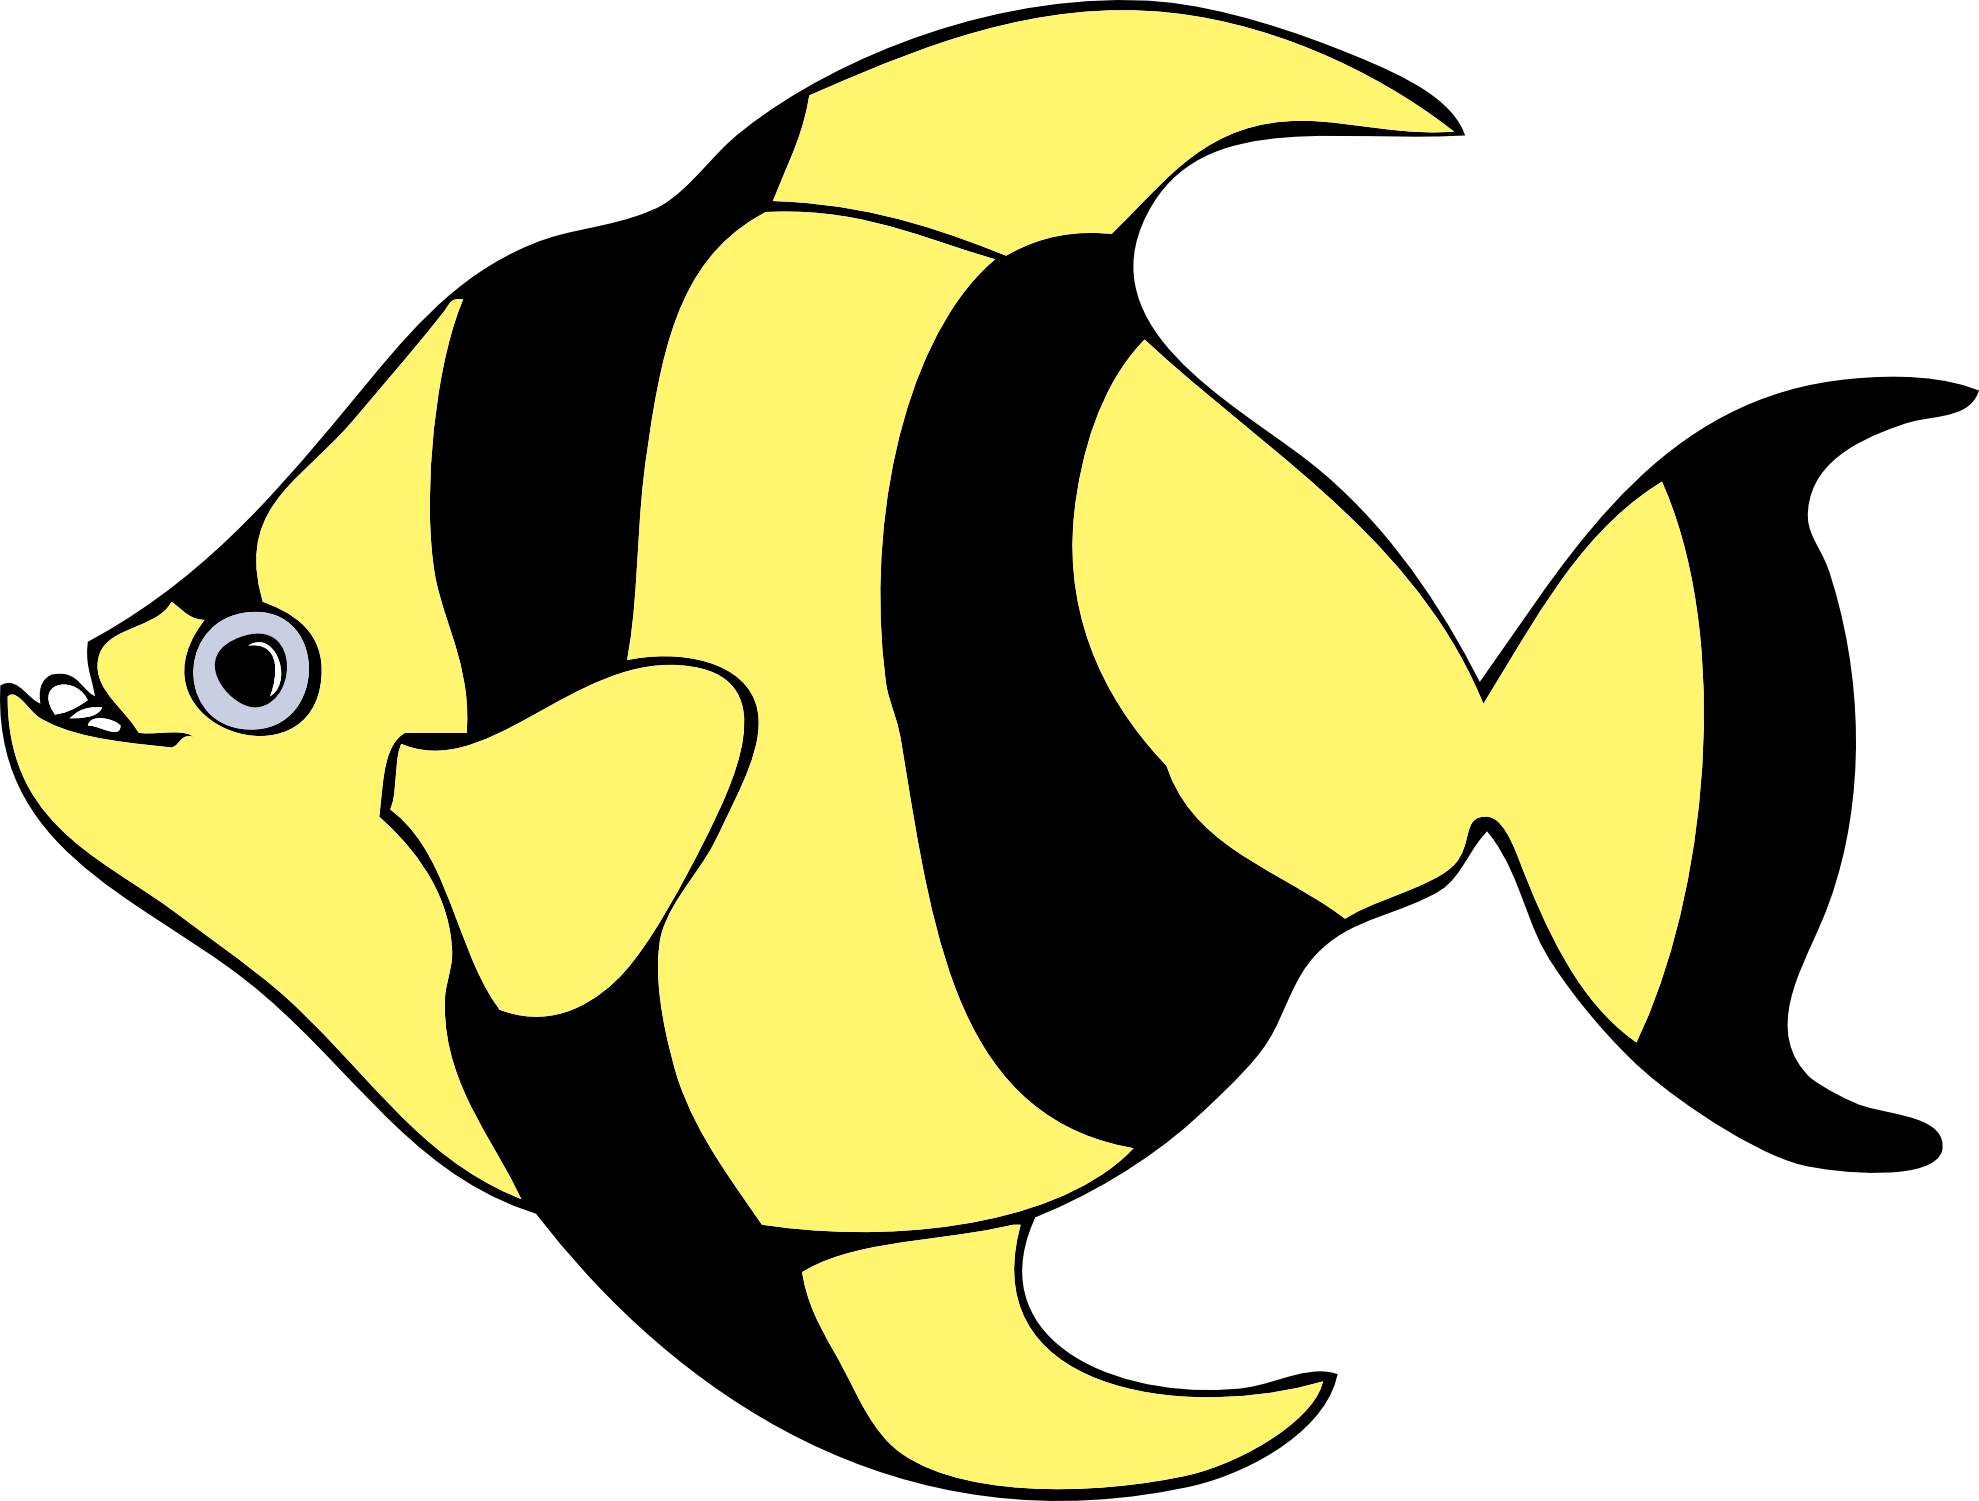 1979x1501 Isda Clipart Clipart Station